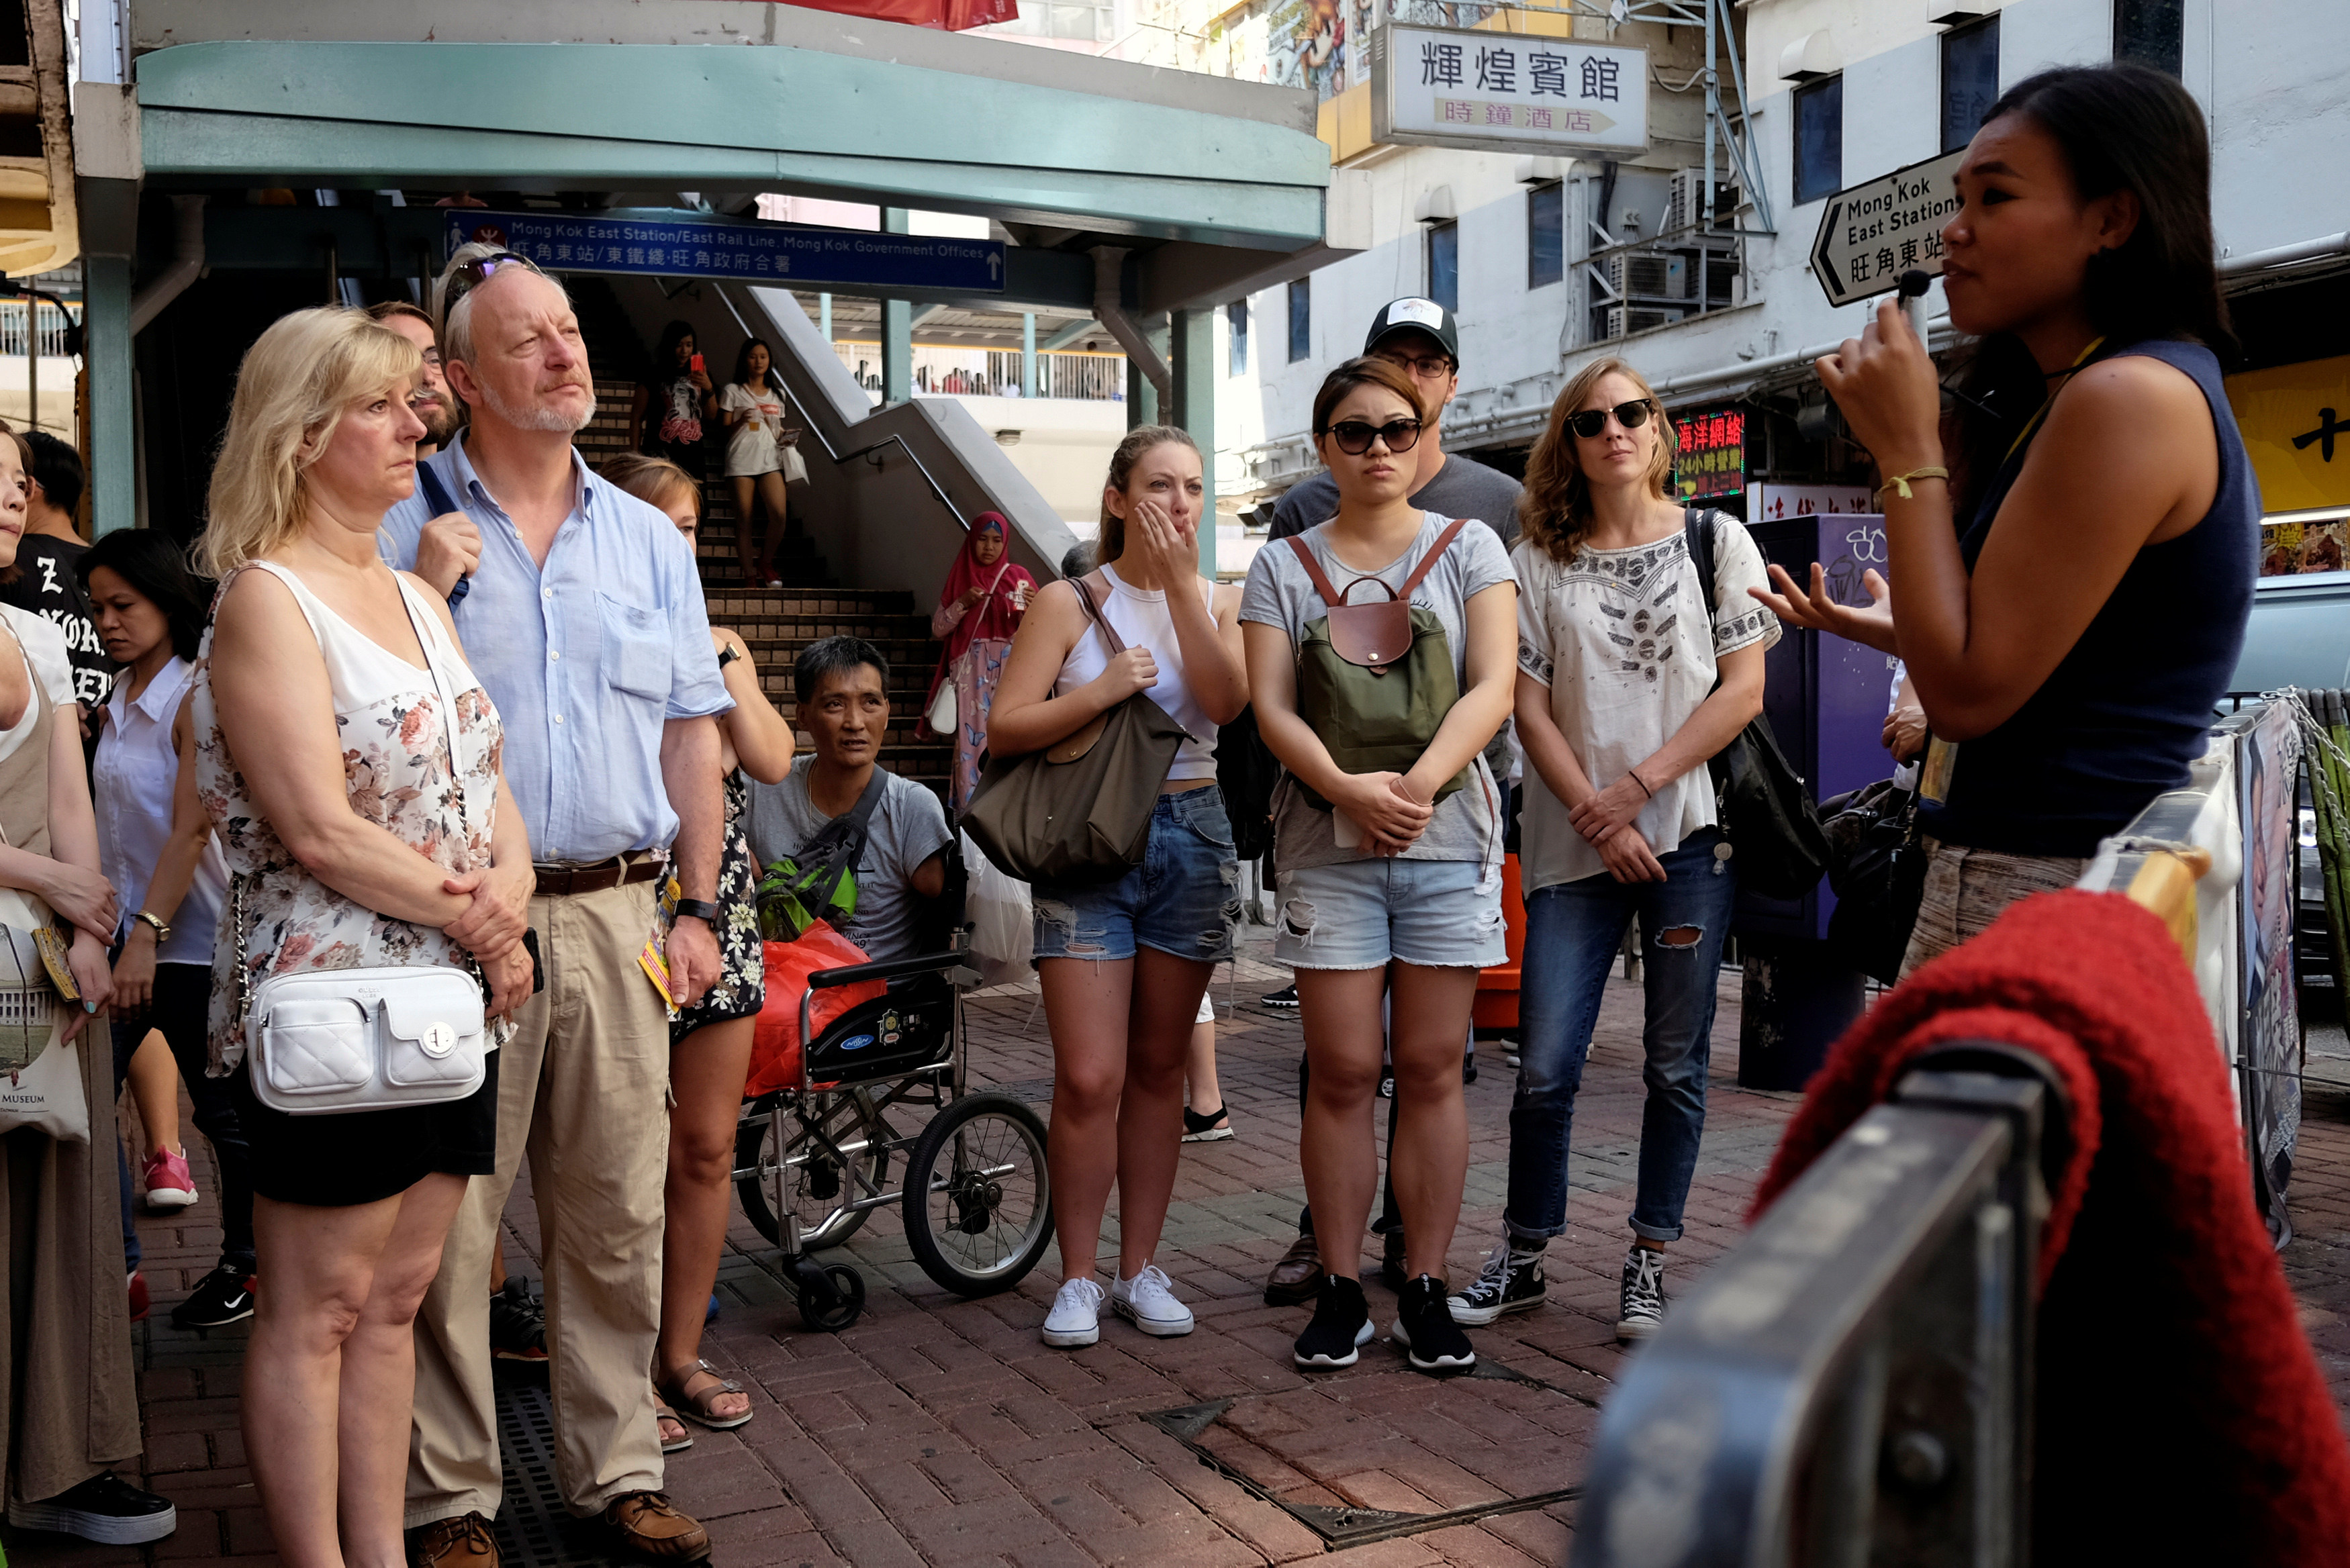 FILE - Tour guide Alla Lau, right, speaks to tourists who join a free tour at Mong Kok district in Hong Kong, China, Aug. 6, 2017.